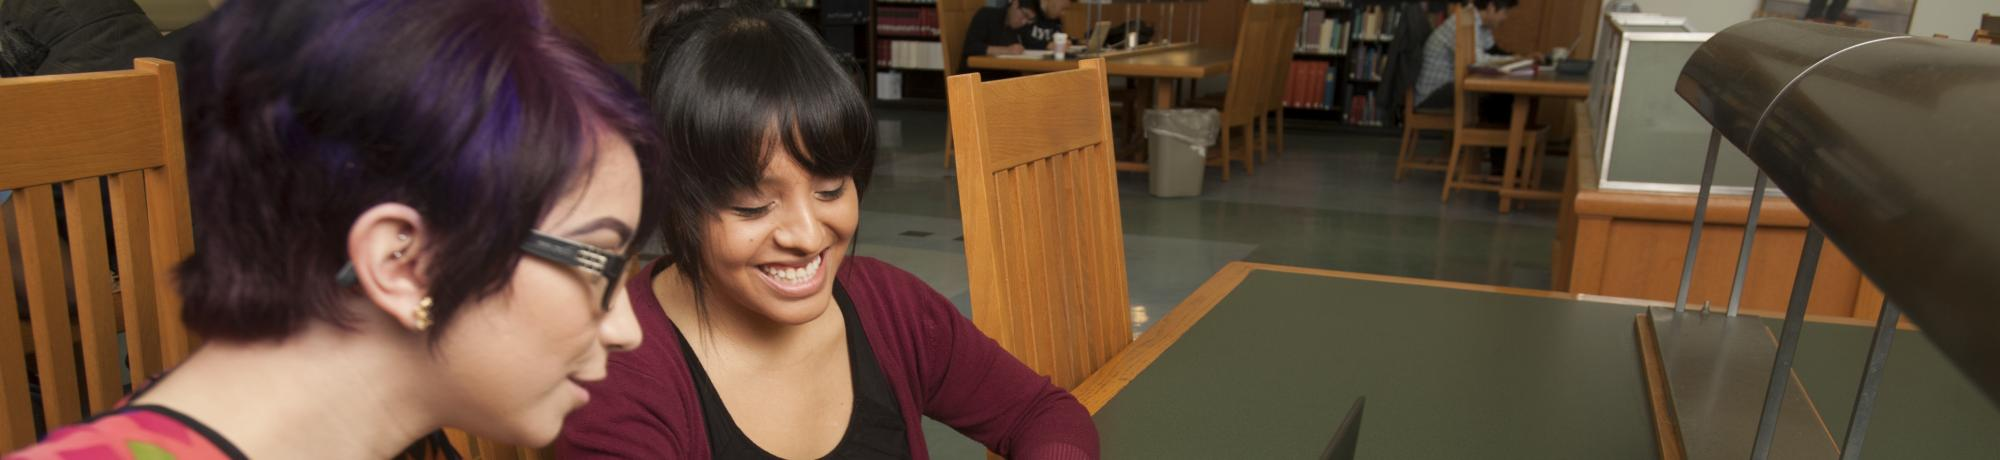 Students helping each other